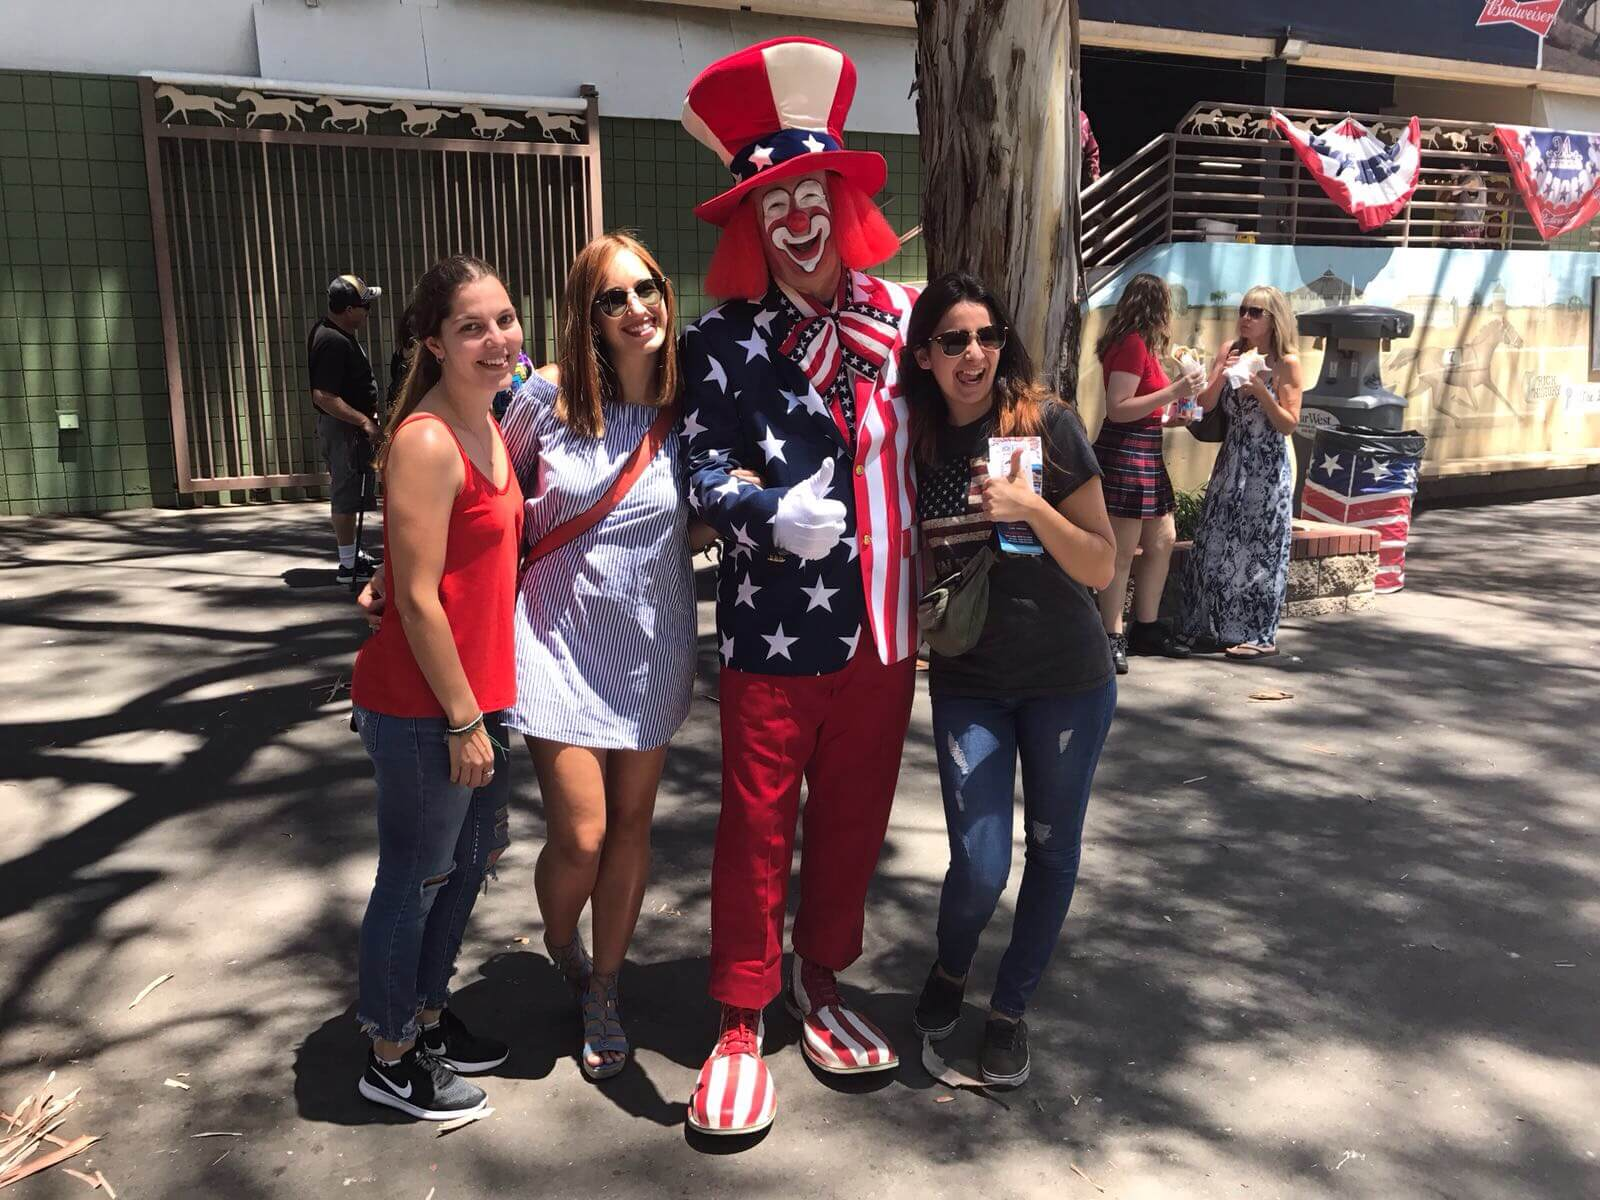 Au pairs celebrando 4th of July en Estados Unidos